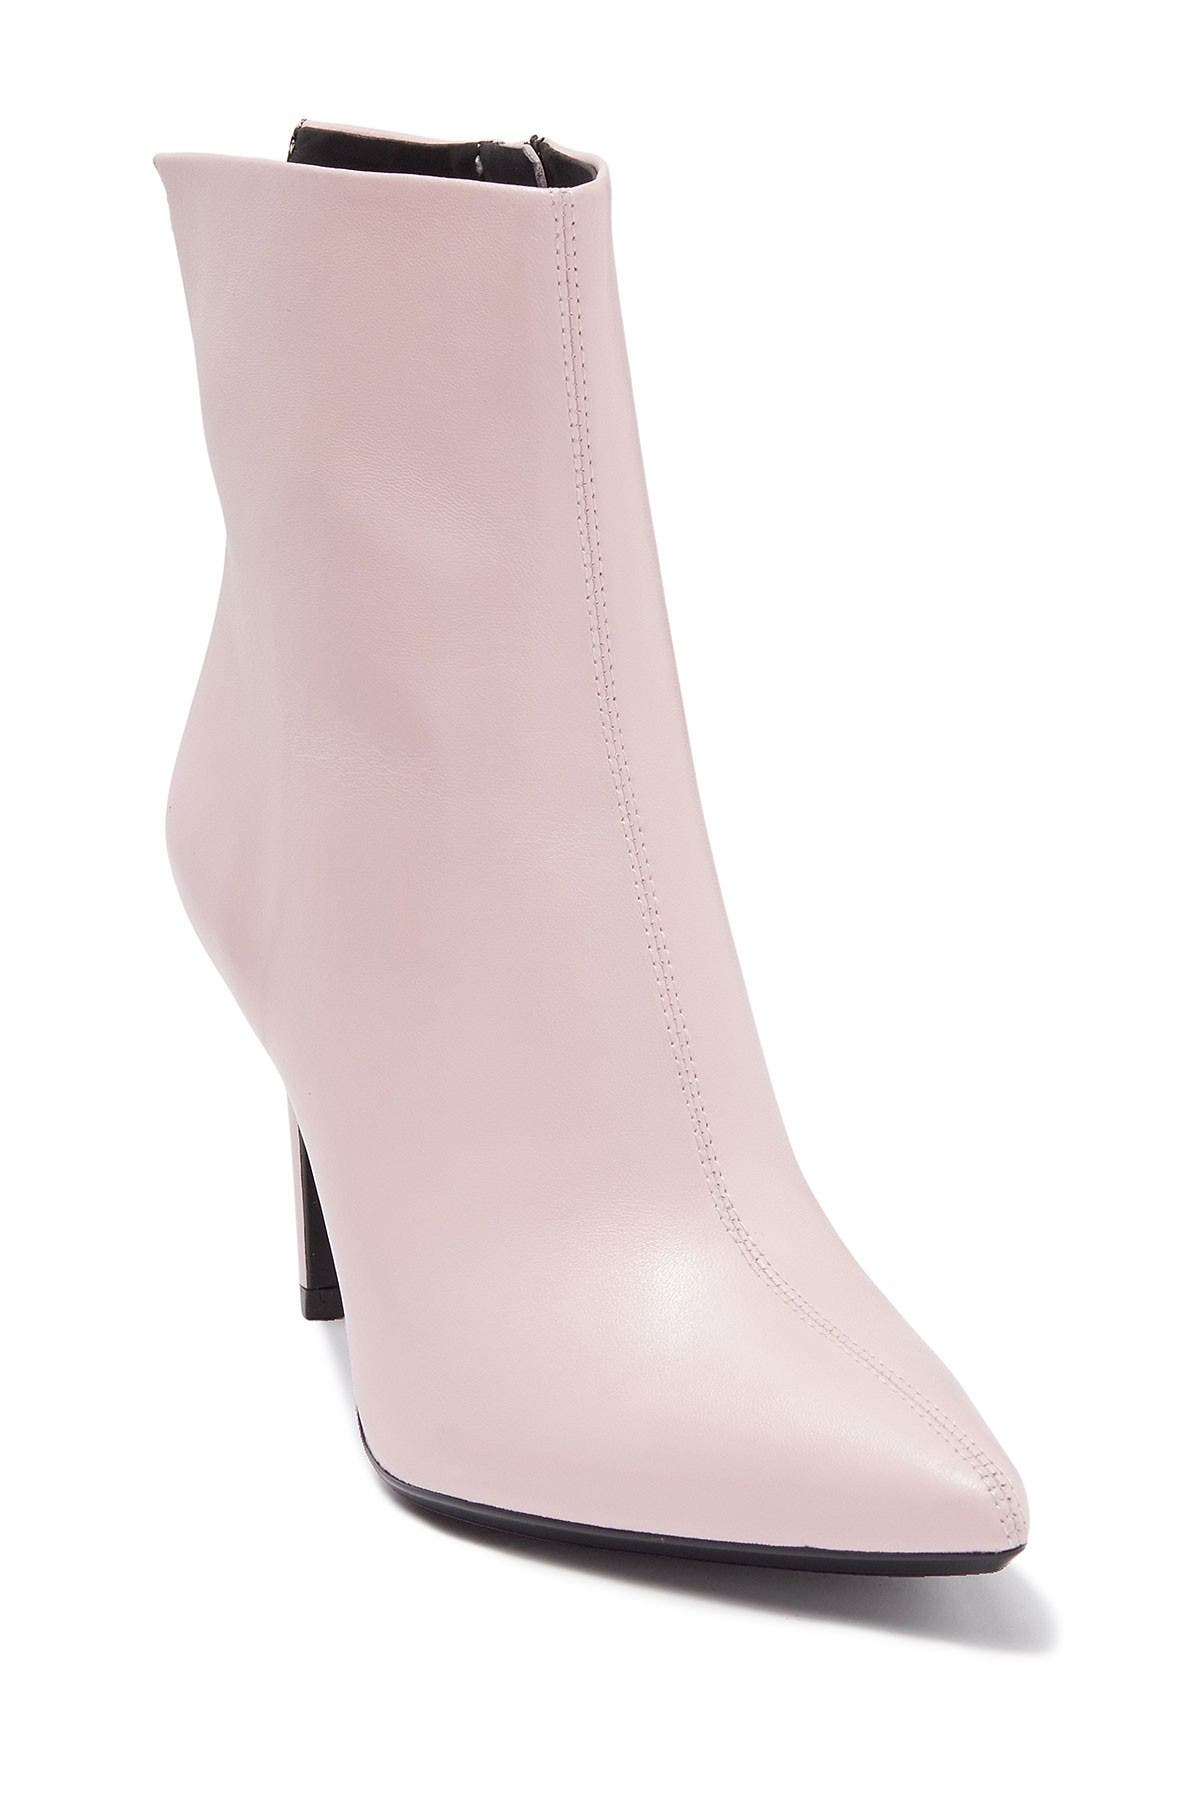 Image of Calvin Klein Revel Nappa Pointed Toe Boot